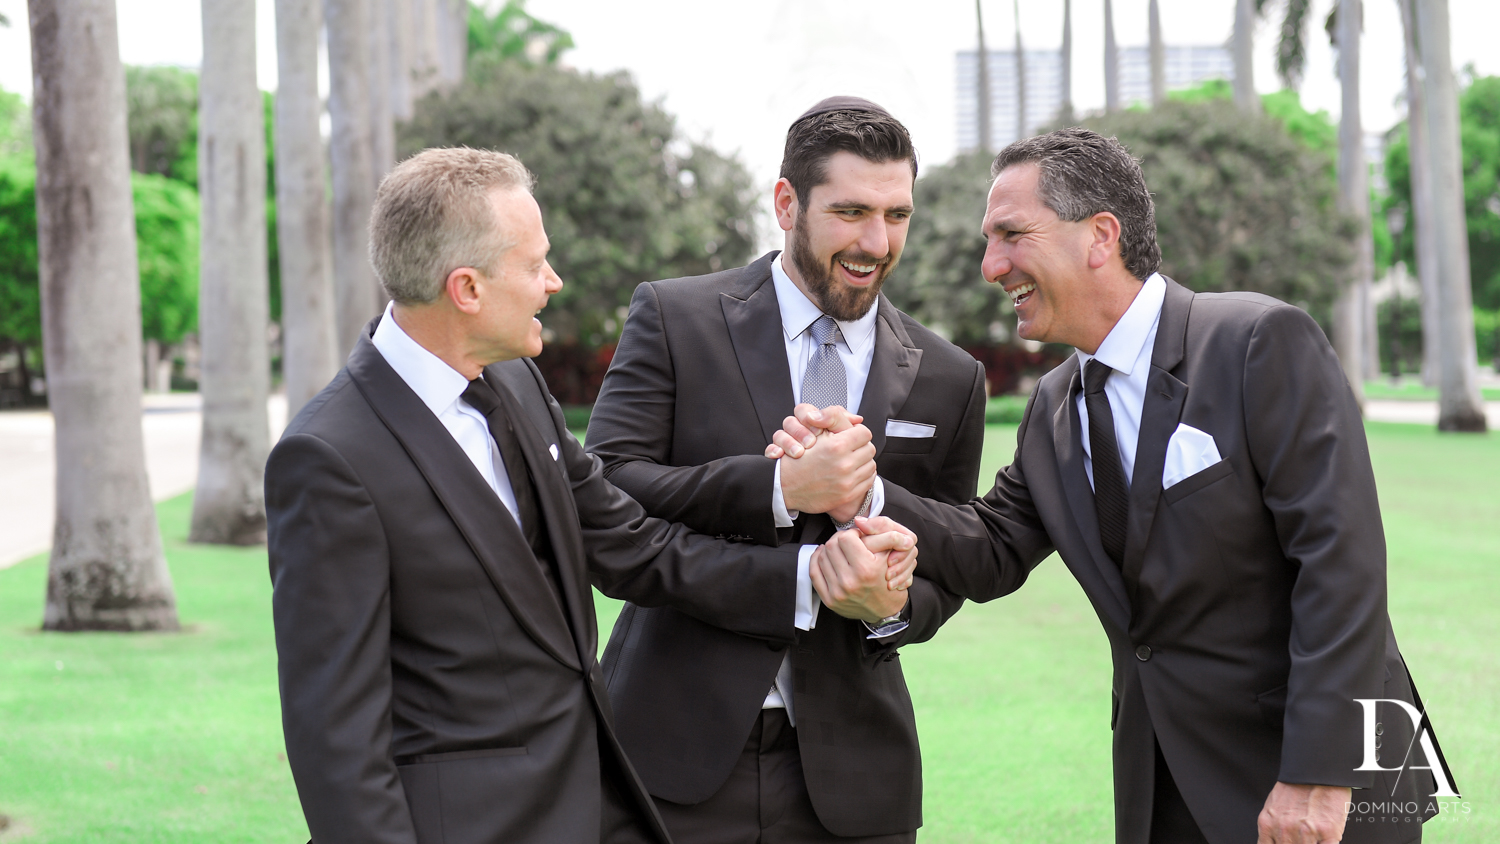 groom and dads at Vintage Garden Wedding at Flagler Museum Palm Beach by Domino Arts Photography